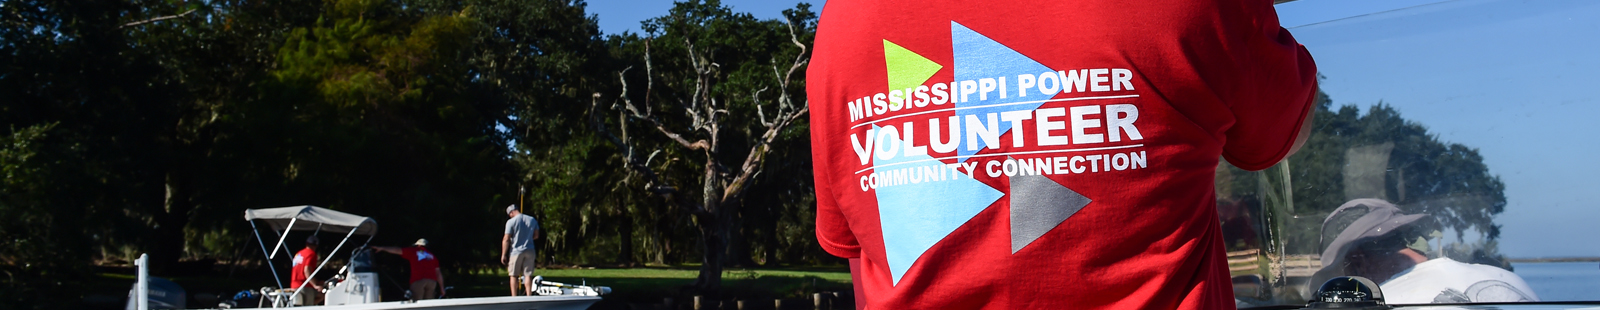 Mississippi Power volunteer